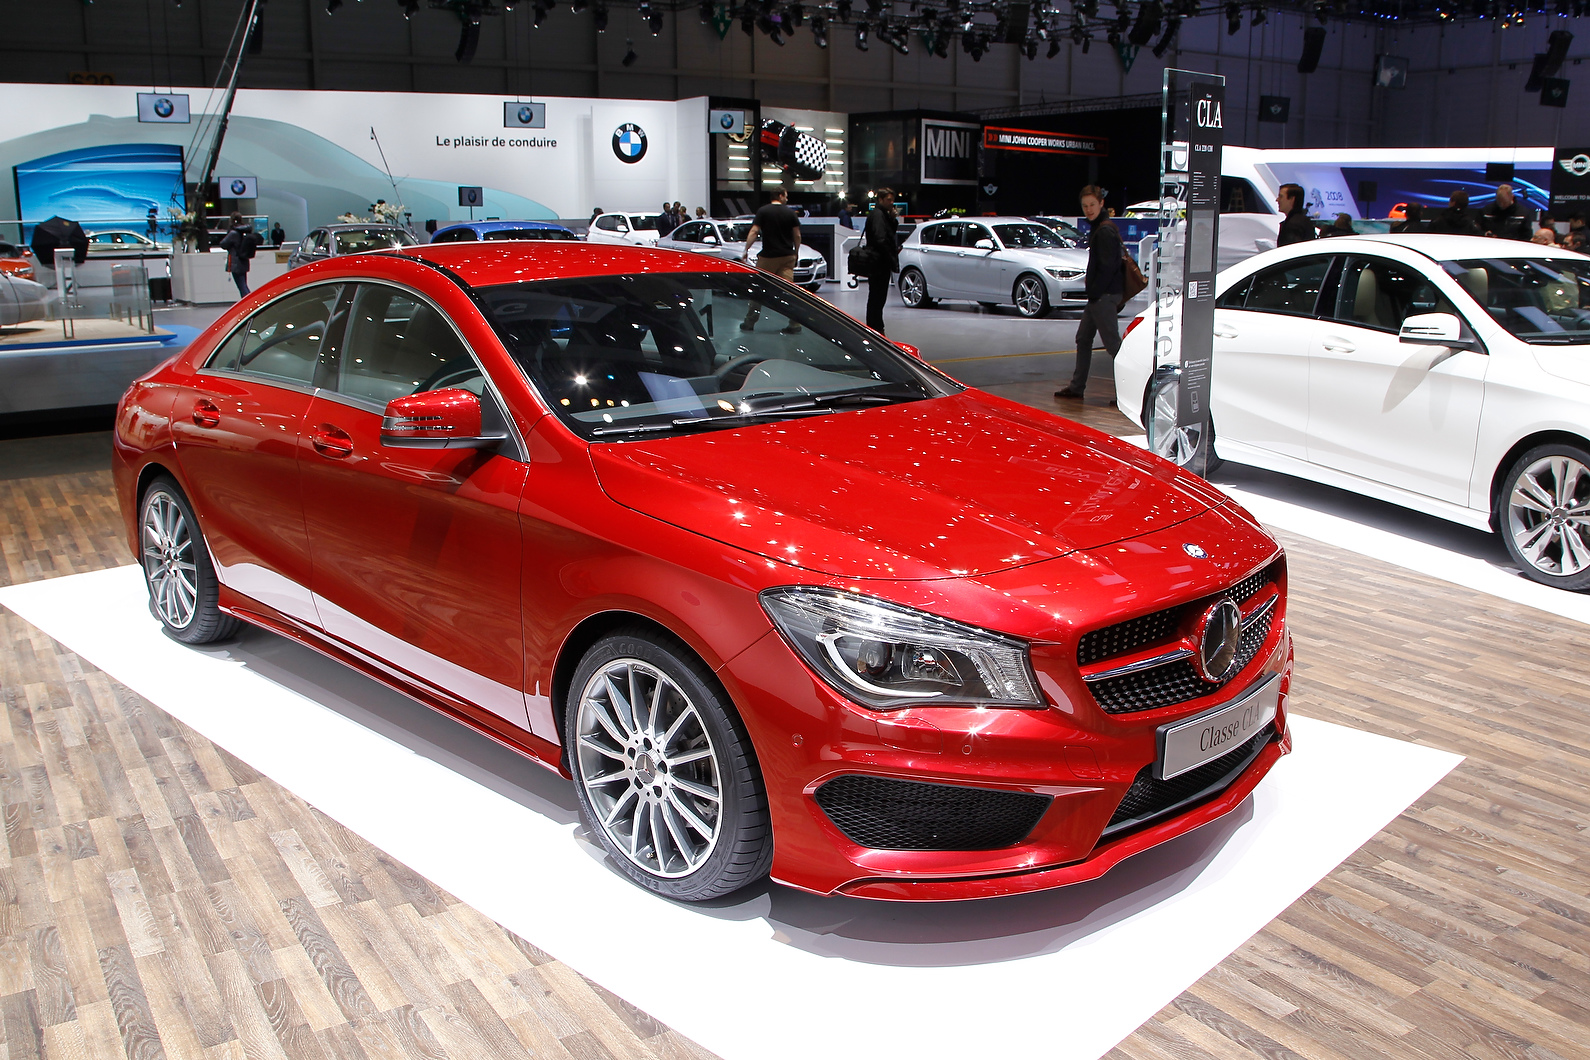 Mercedes CLA is based on the A-class platform and will spawn an AMG version